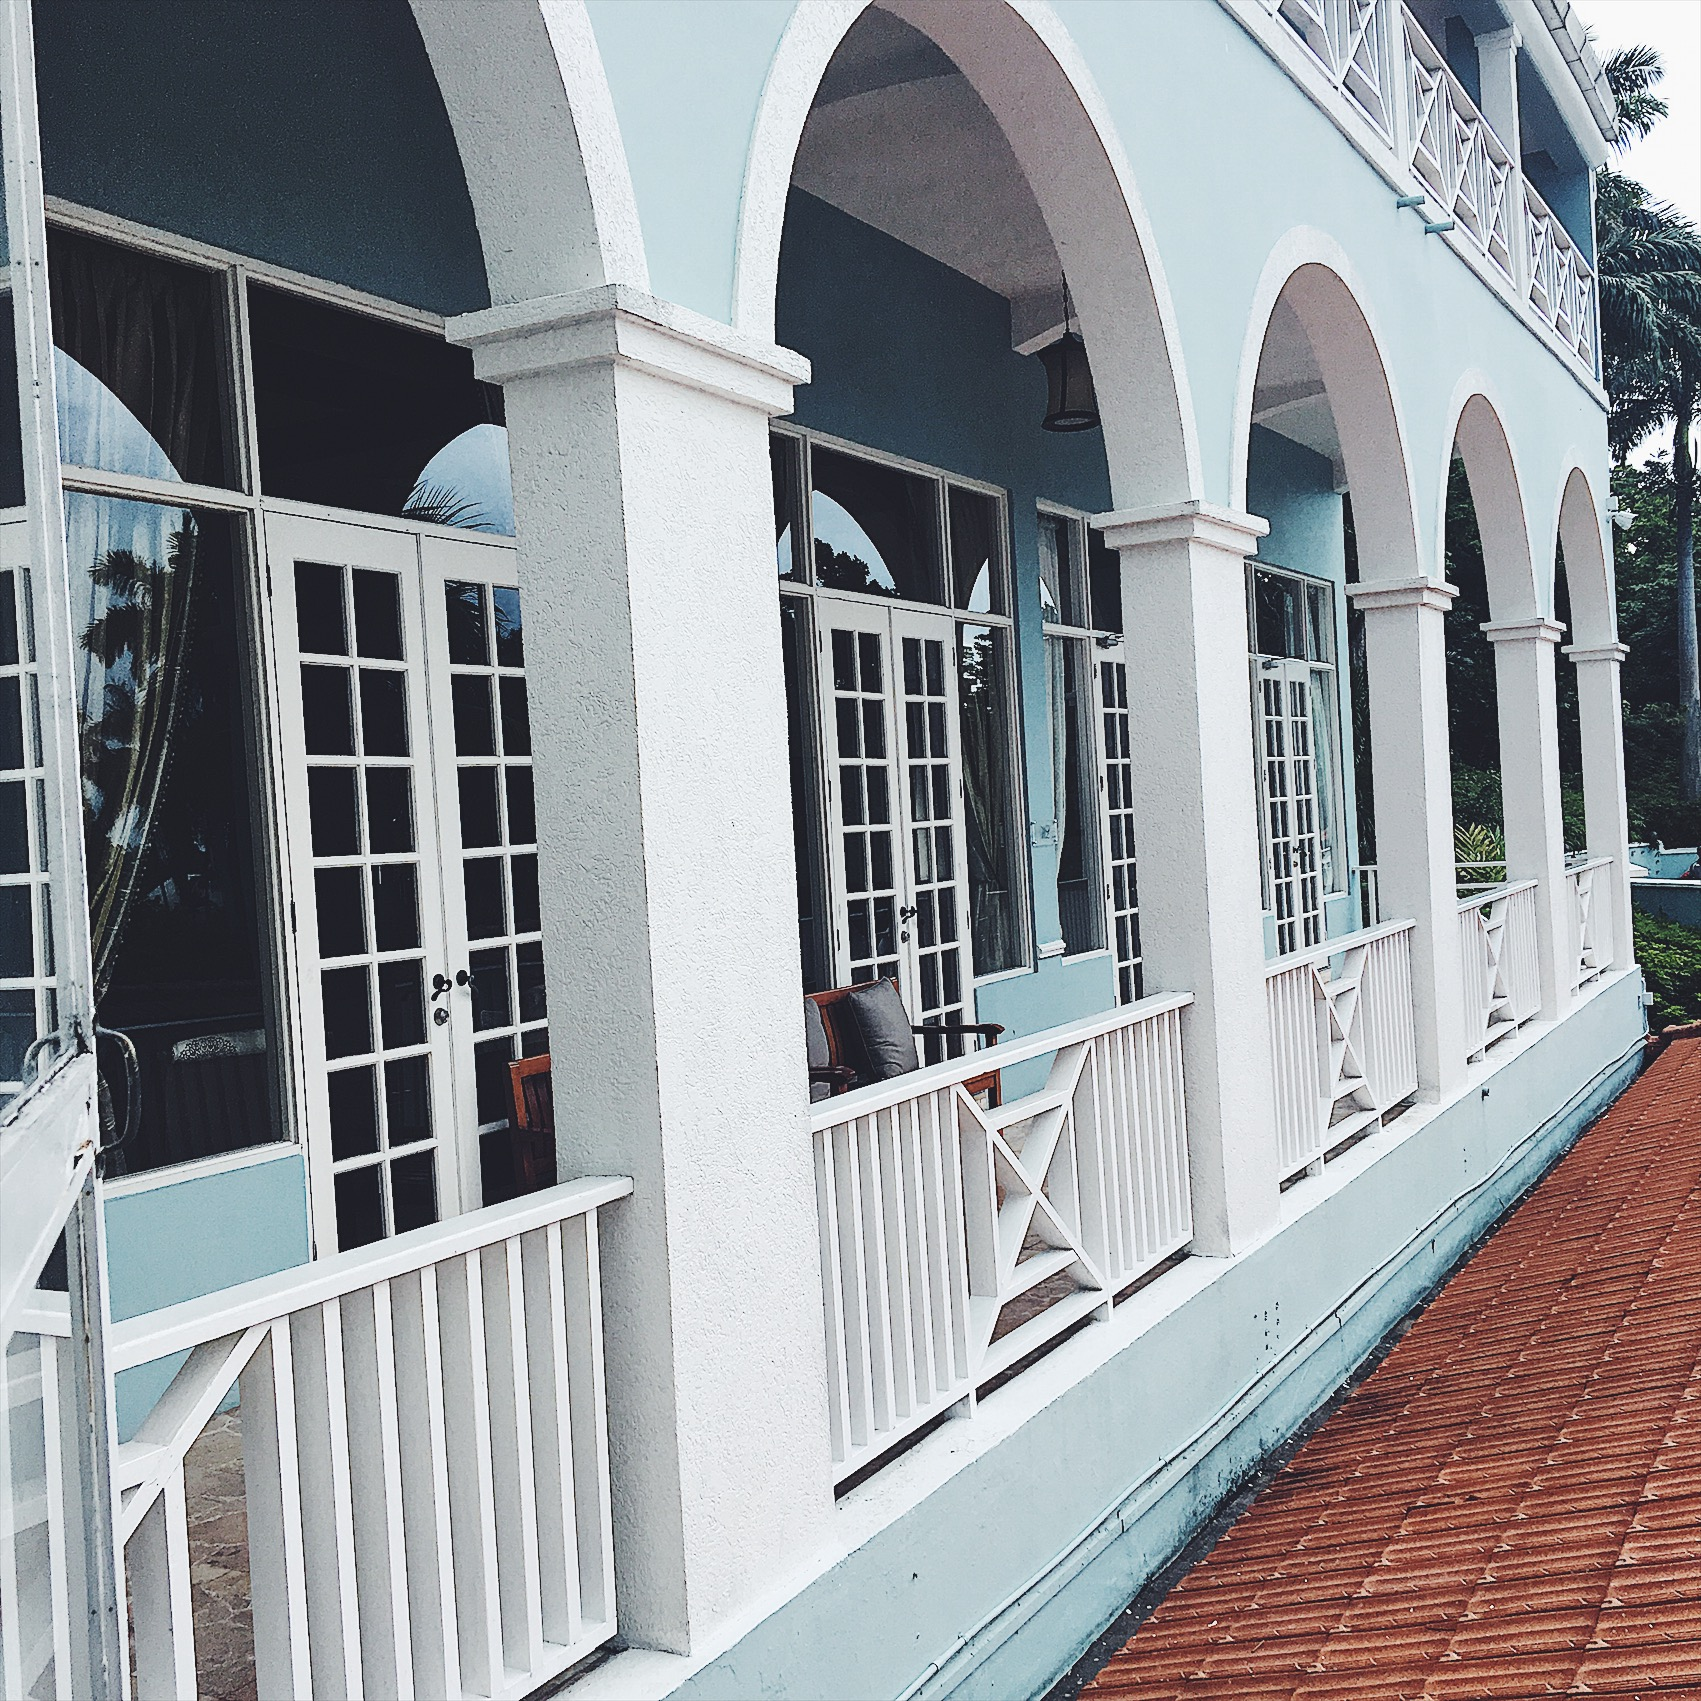 Architecture and pastel colors at resort were beautiful!